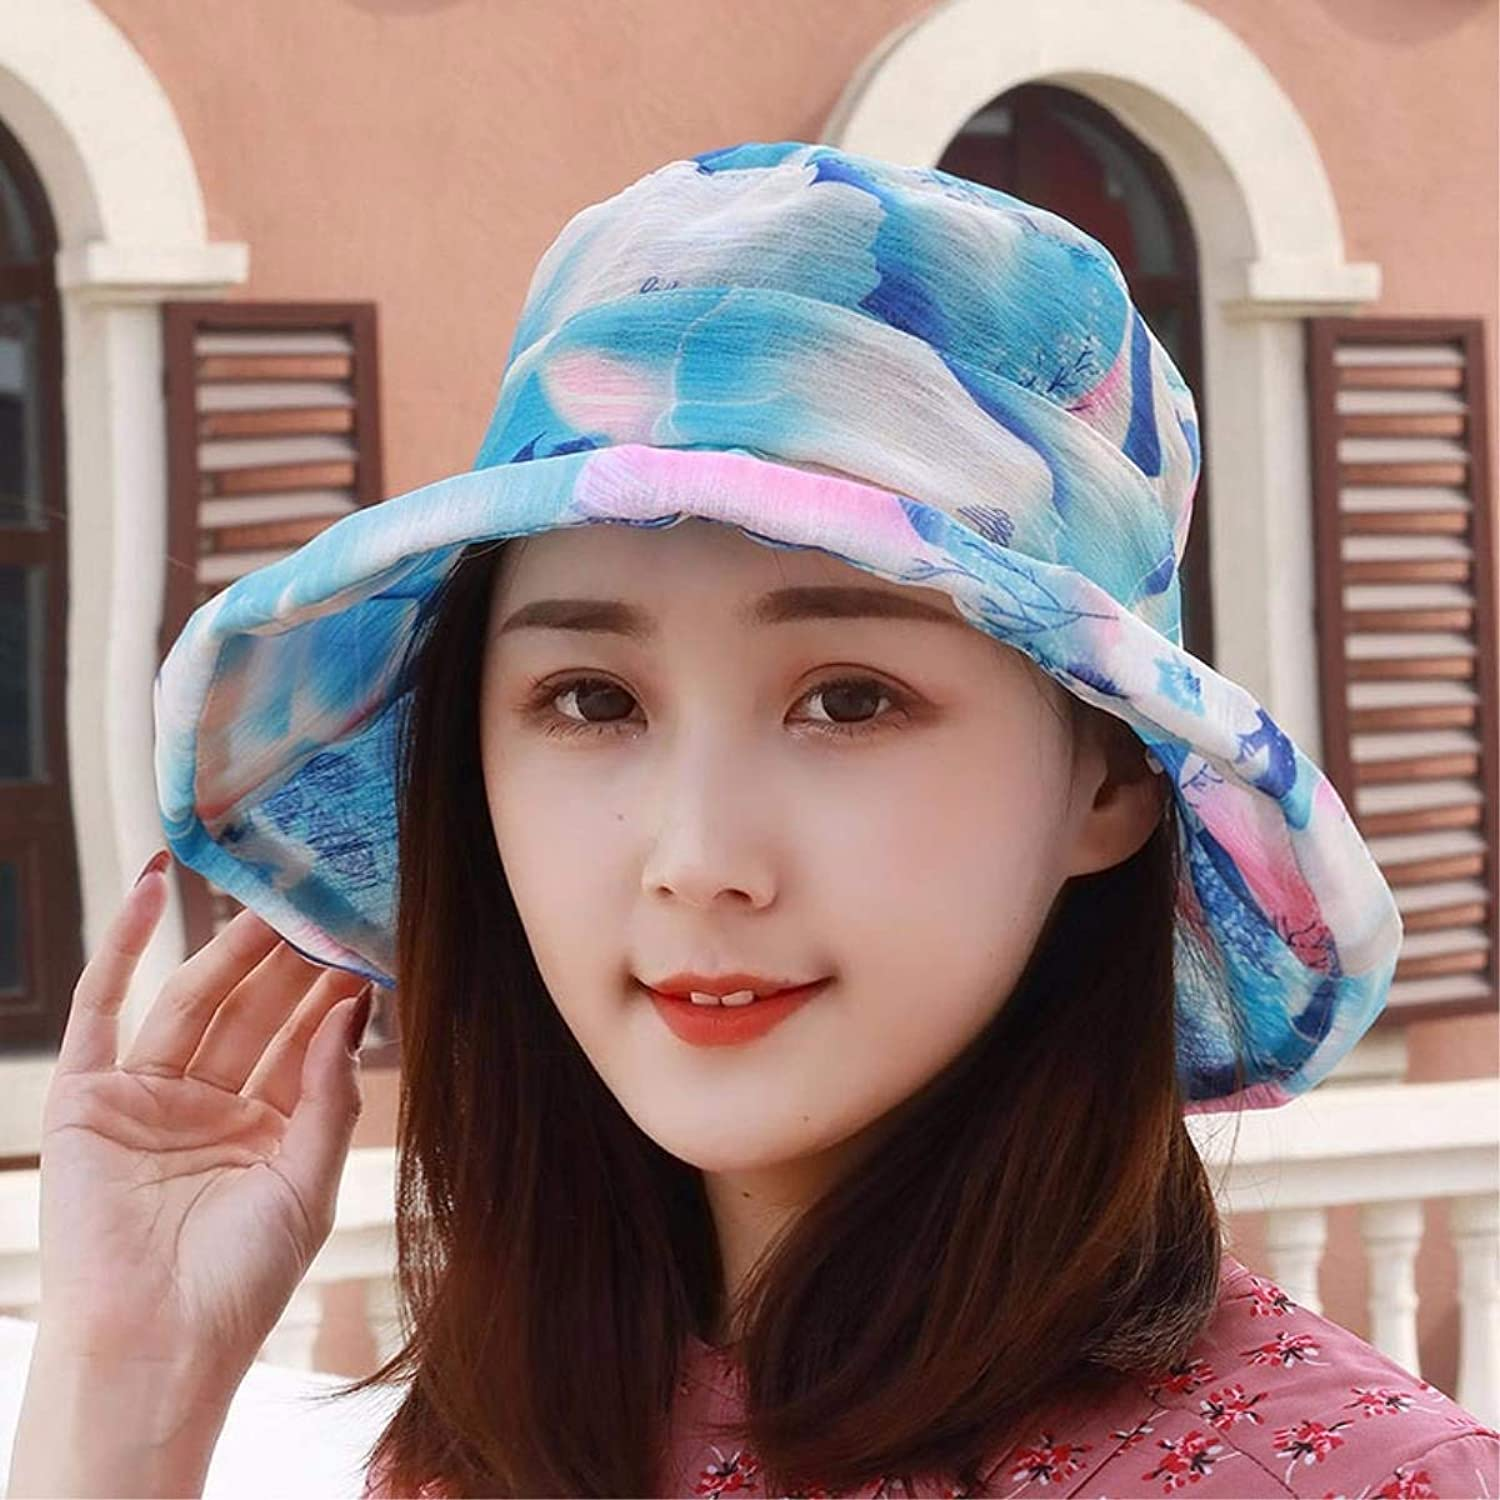 Dingkun Hat the girl and the flip side of the Visor hats sun hat outdoor beach sand basin cap hat Cap